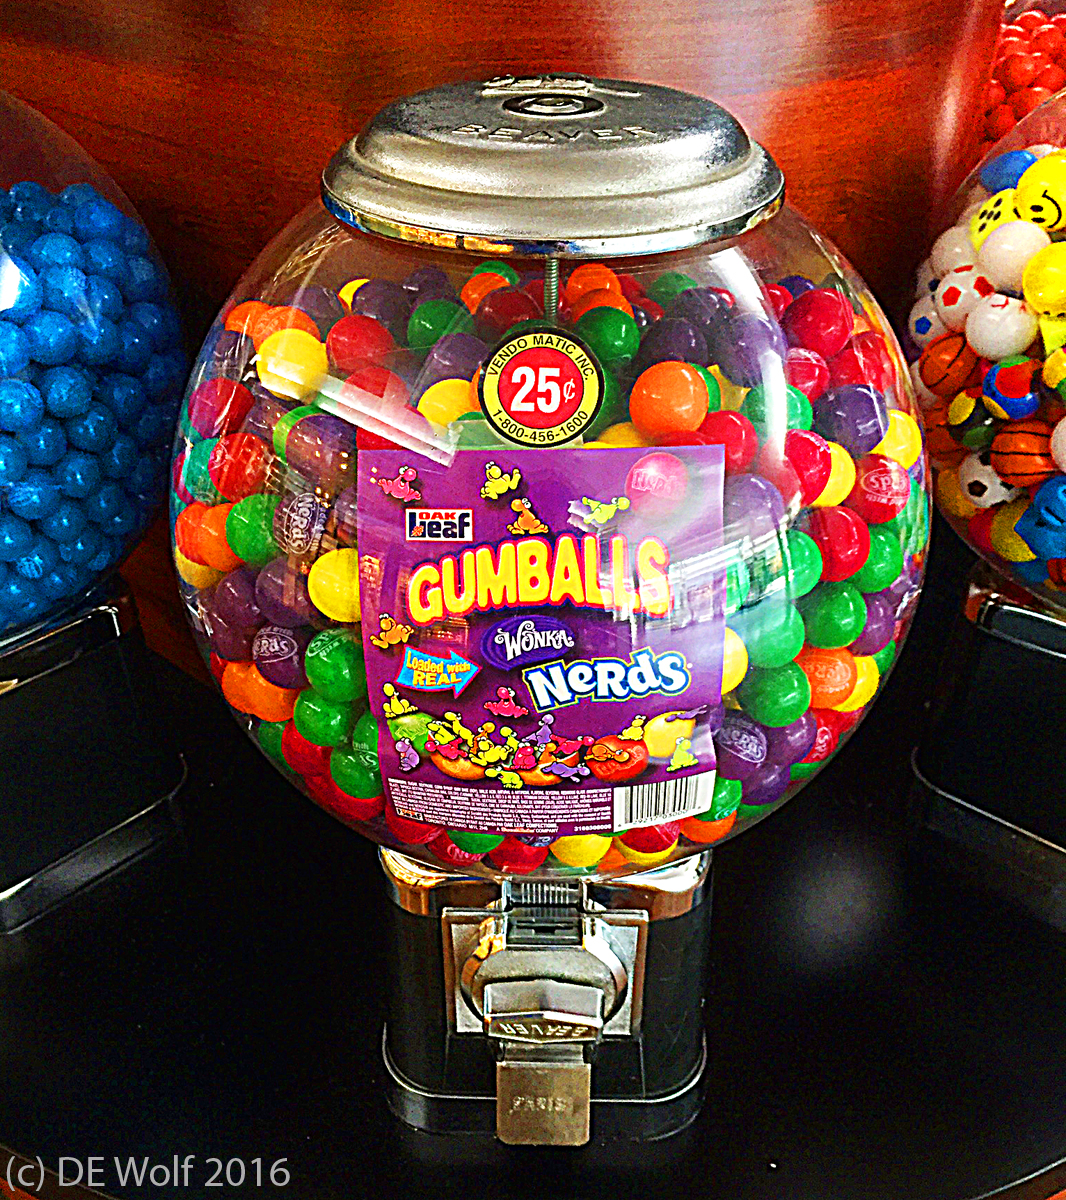 Figure 1 - Gumball machine. (c) DE Wolf 2016.